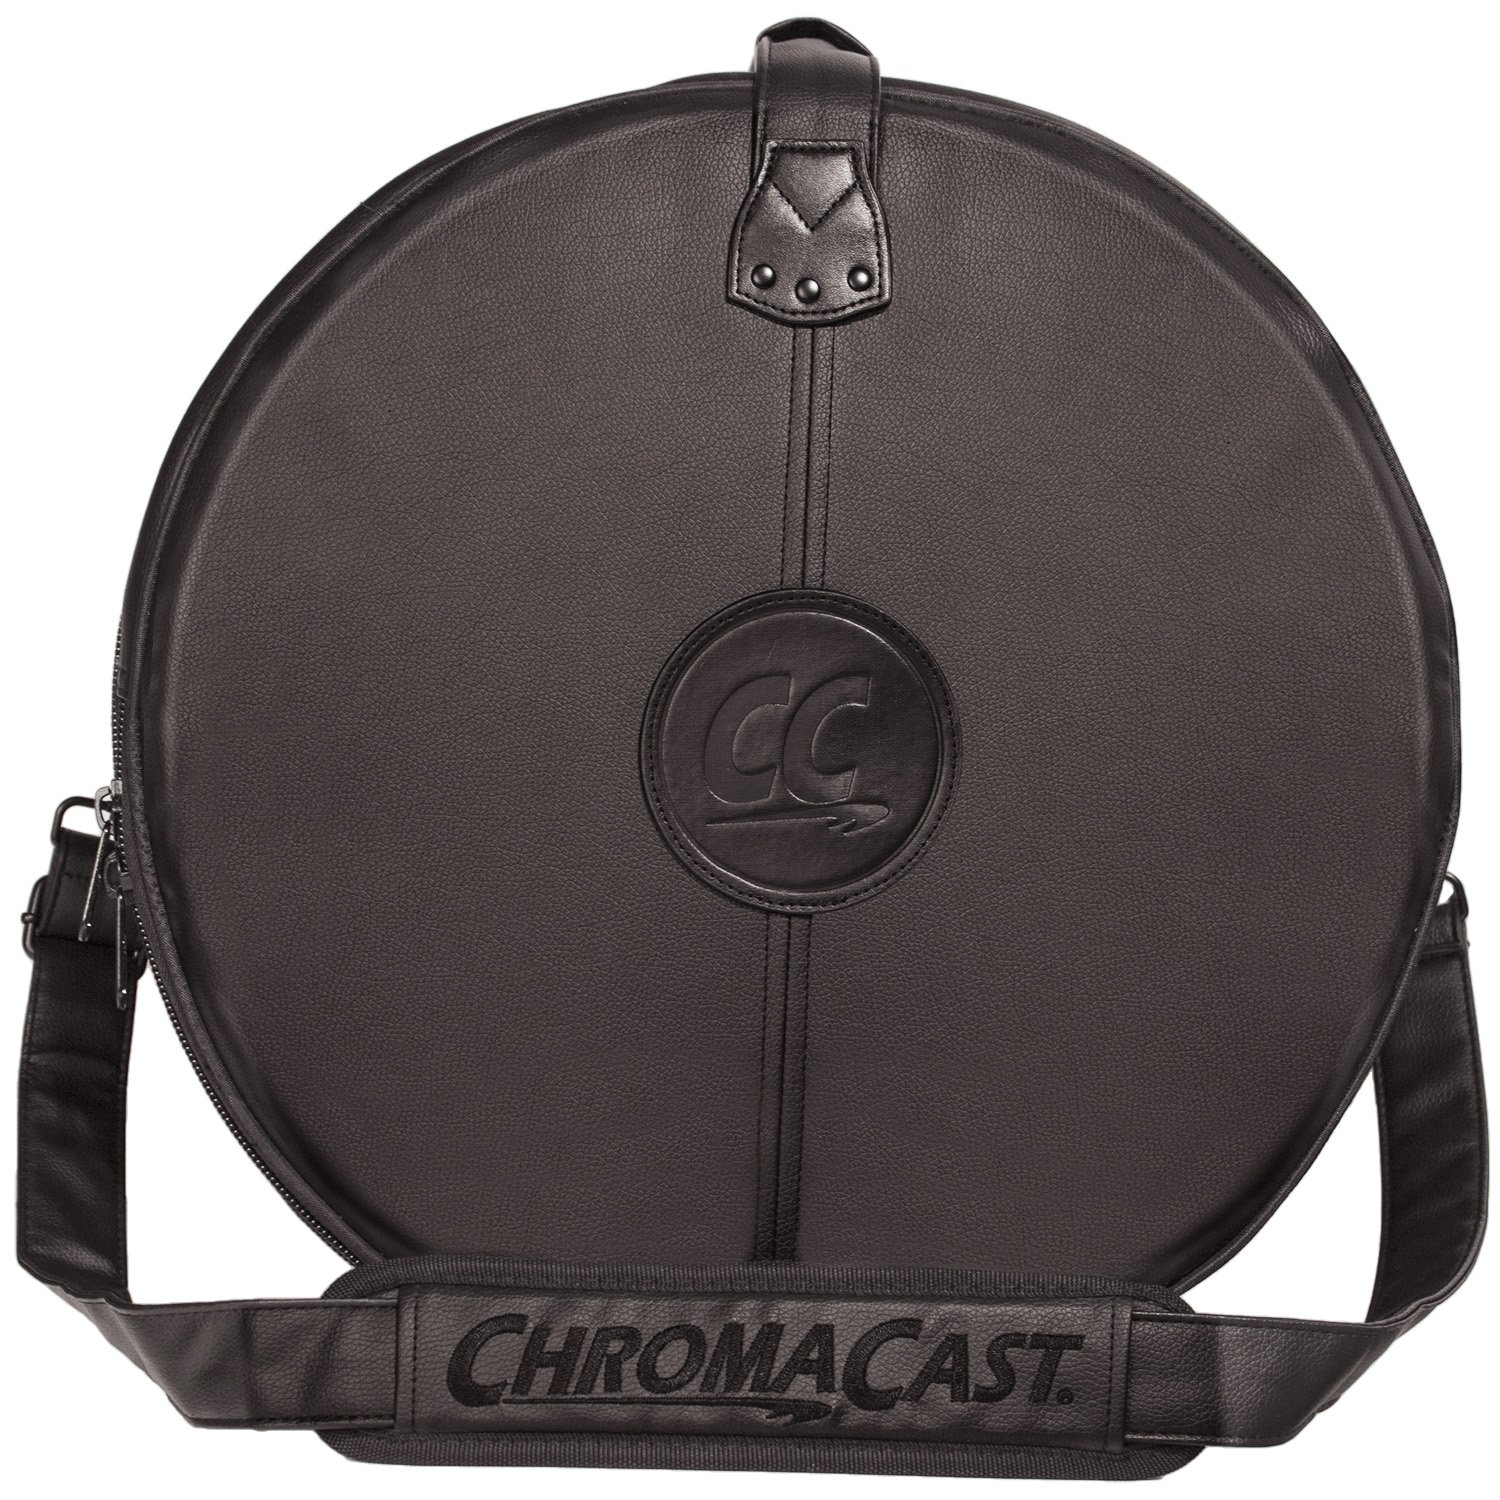 ChromaCast Pro Series 22-inch Bass Drum Bag CC-PS-BD-BAG-22x16